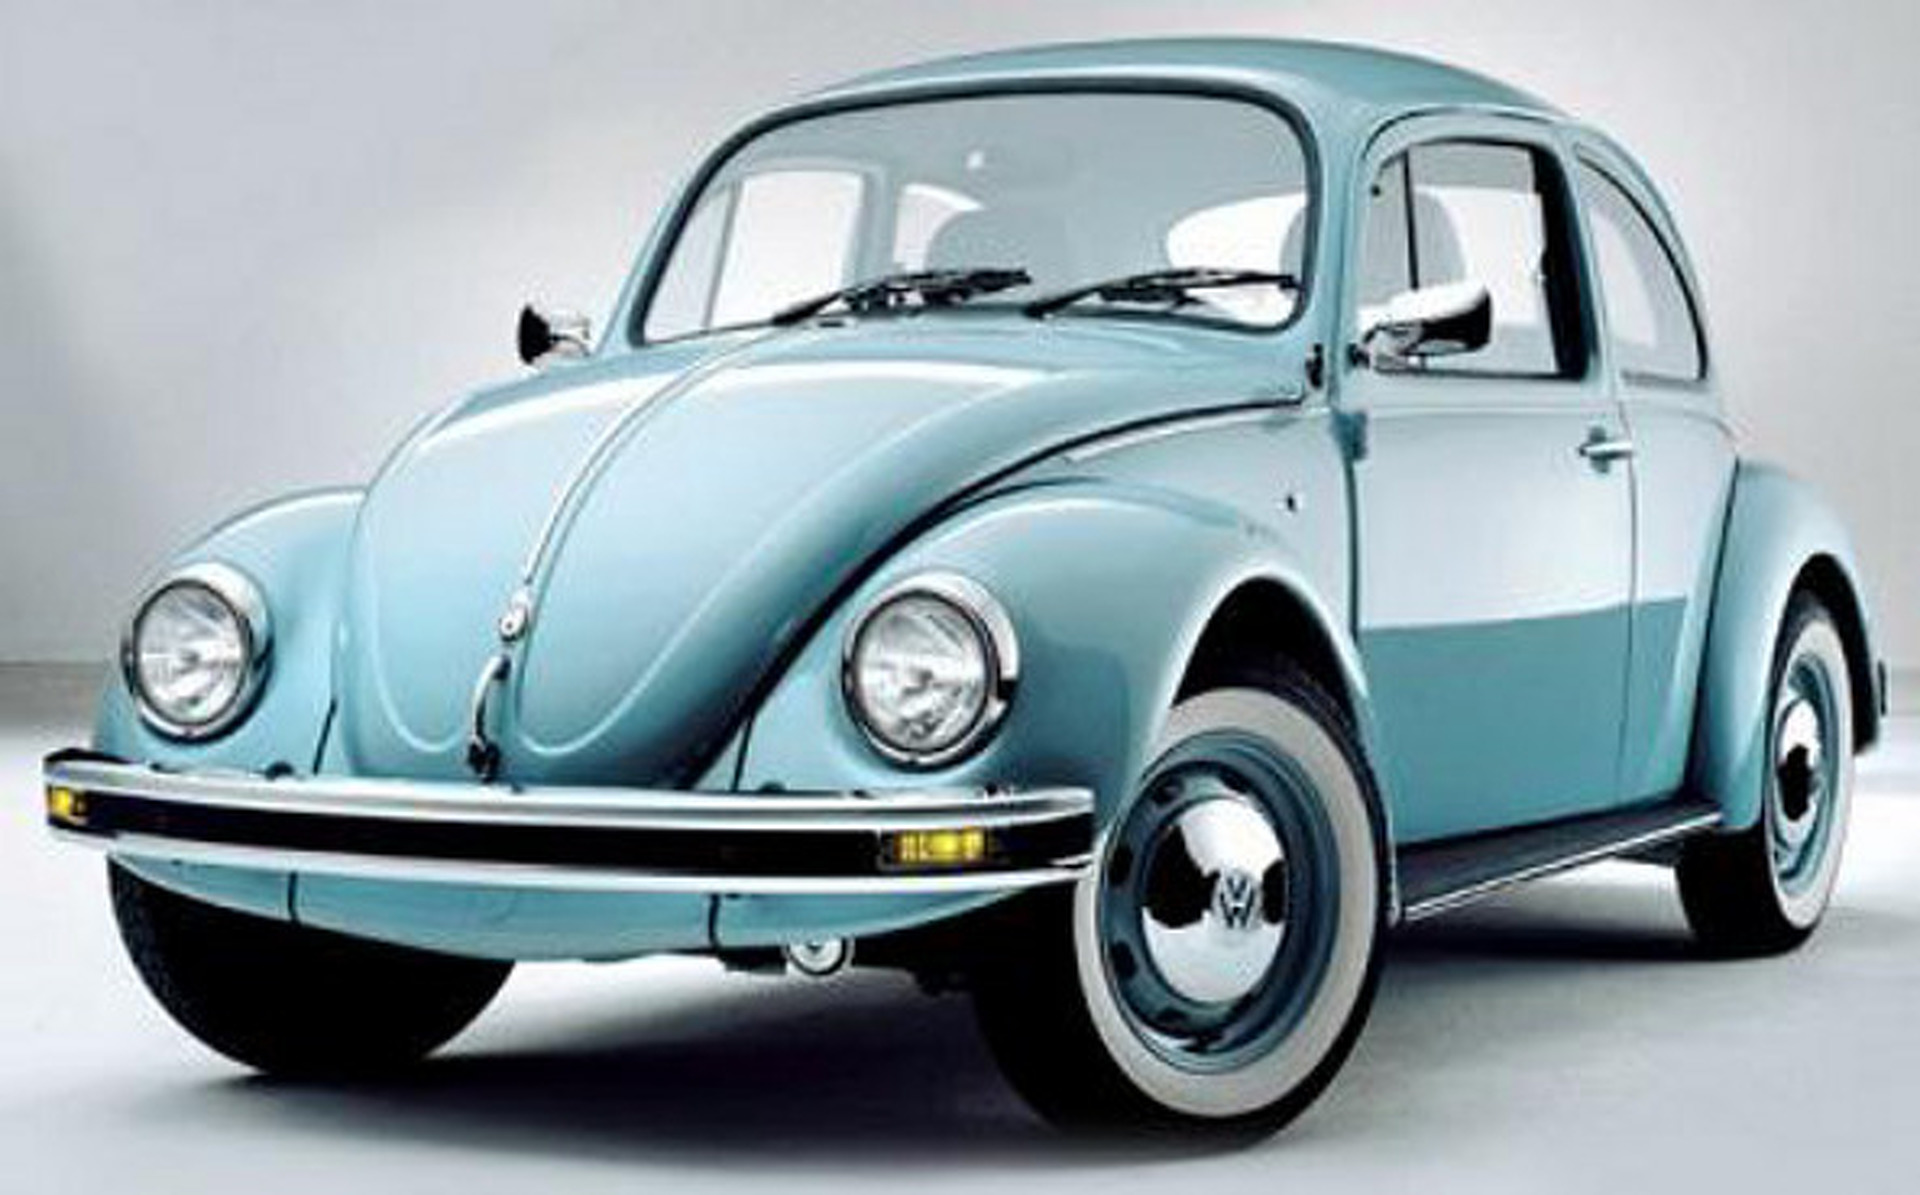 This Week in Automotive History: February 11-February 17